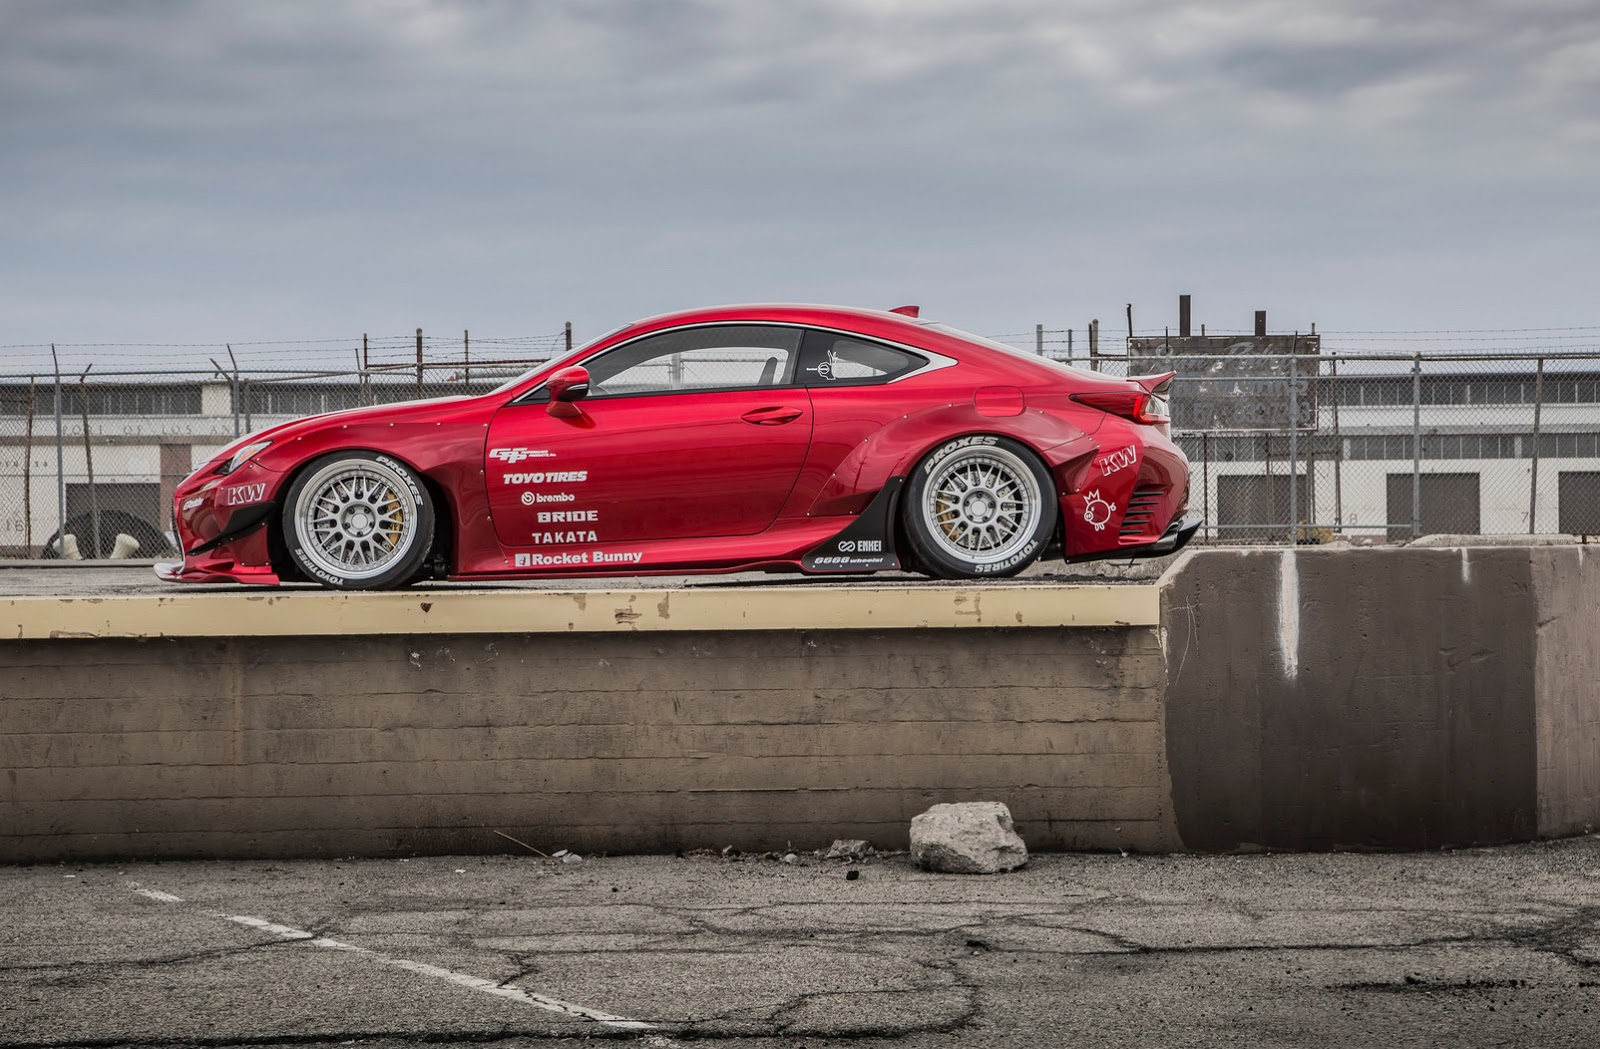 heres-your-rocket-bunny-lexus-rc-and-a-more-visceral-rc-f-photo-gallery_3